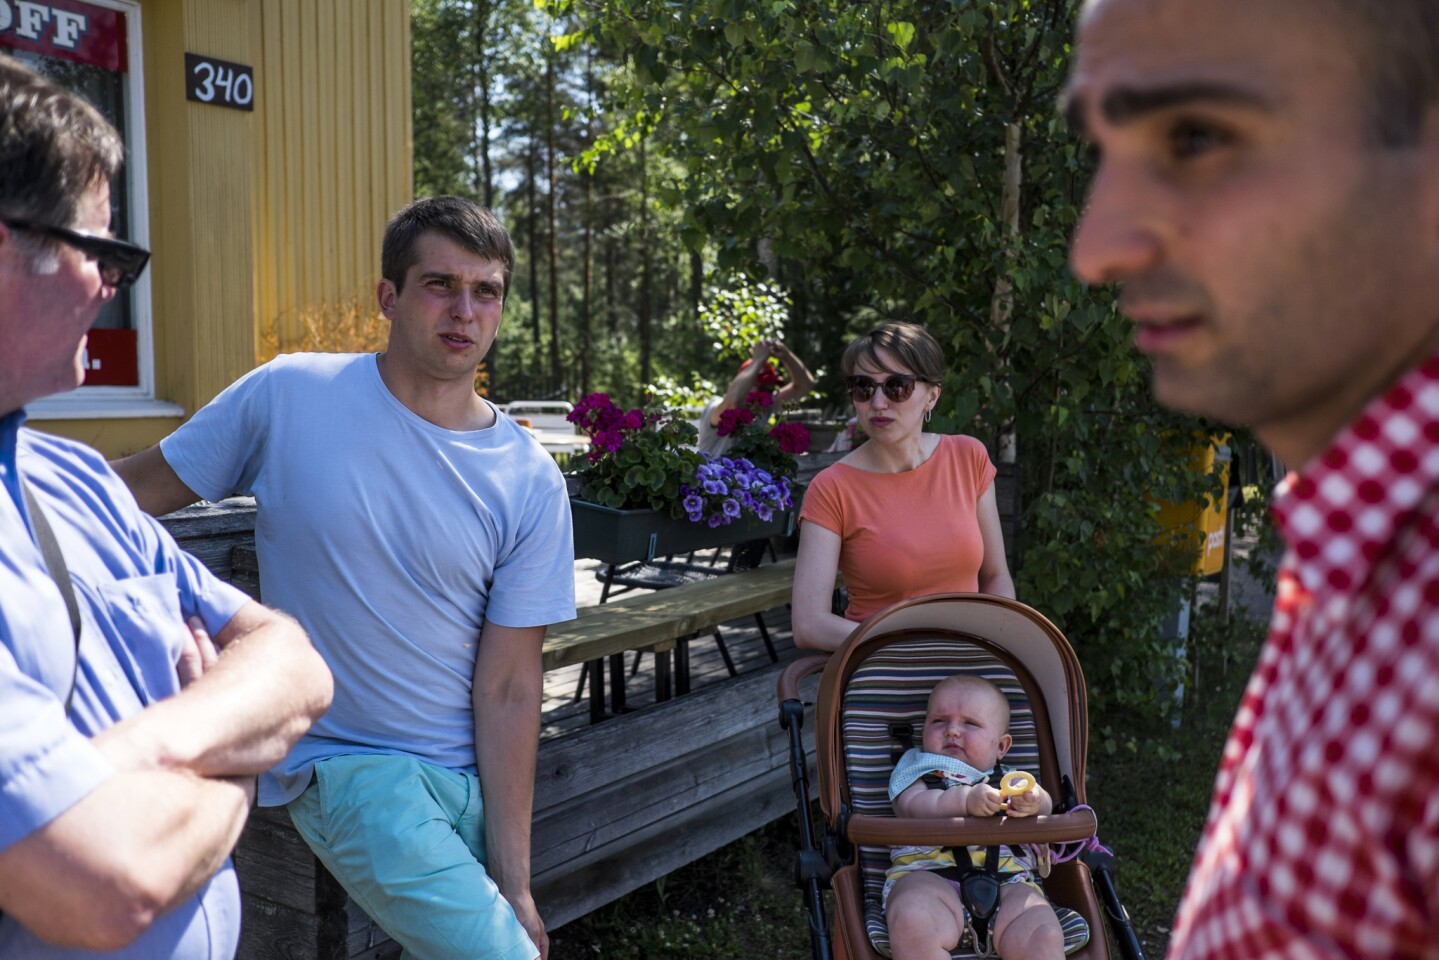 Sergei Kotelnikova, second from left, is shown with his wife, Anya, and their daughter, Emily, at a refugee center in Konnunsuo, Finland. The family fled Russia, as did Alin Tovmasian, right, after Jehovah's Witnesses were labeled extremists there and their faith was banned. At left is Harri Ikonen, a member of the Jehovah's Witnesses community in Konnunsuo.